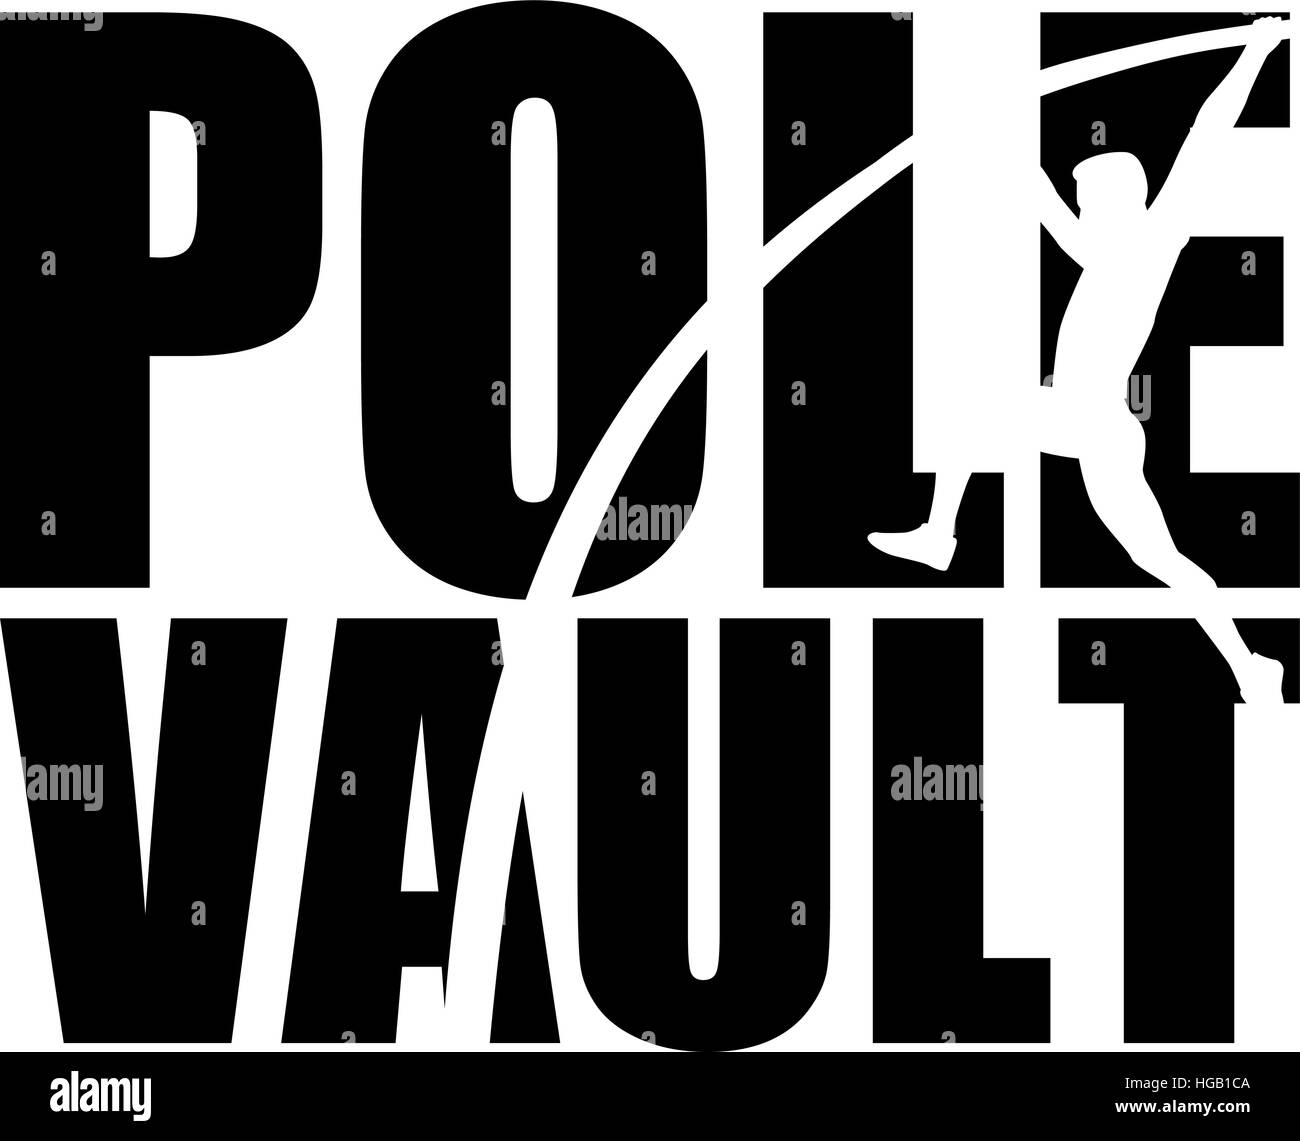 Pole Vault with silhouette - Stock Vector